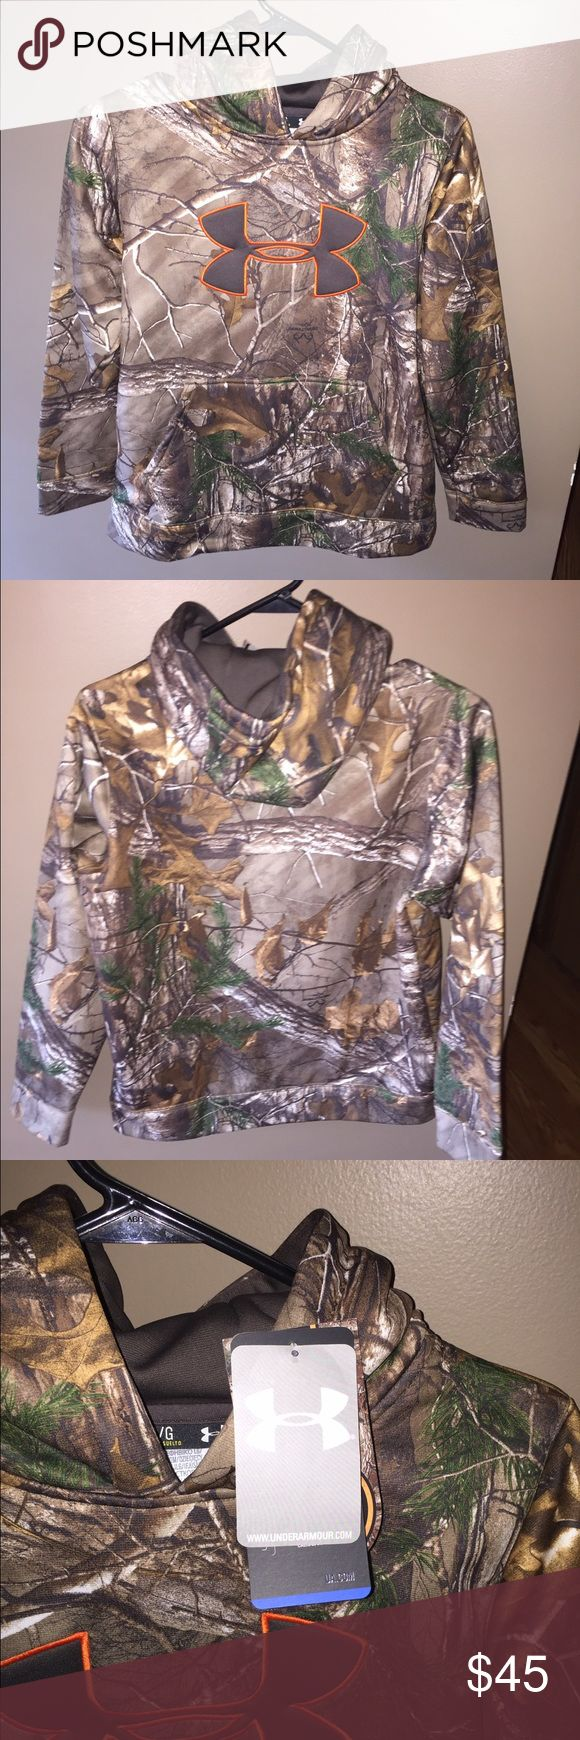 1 DAY SALE 🎈YOUTH UNDER ARMOUR CAMO HOODIE SIZE L This is a new with tags youth Underarmour hoodie. Under Armour Shirts & Tops Sweatshirts & Hoodies